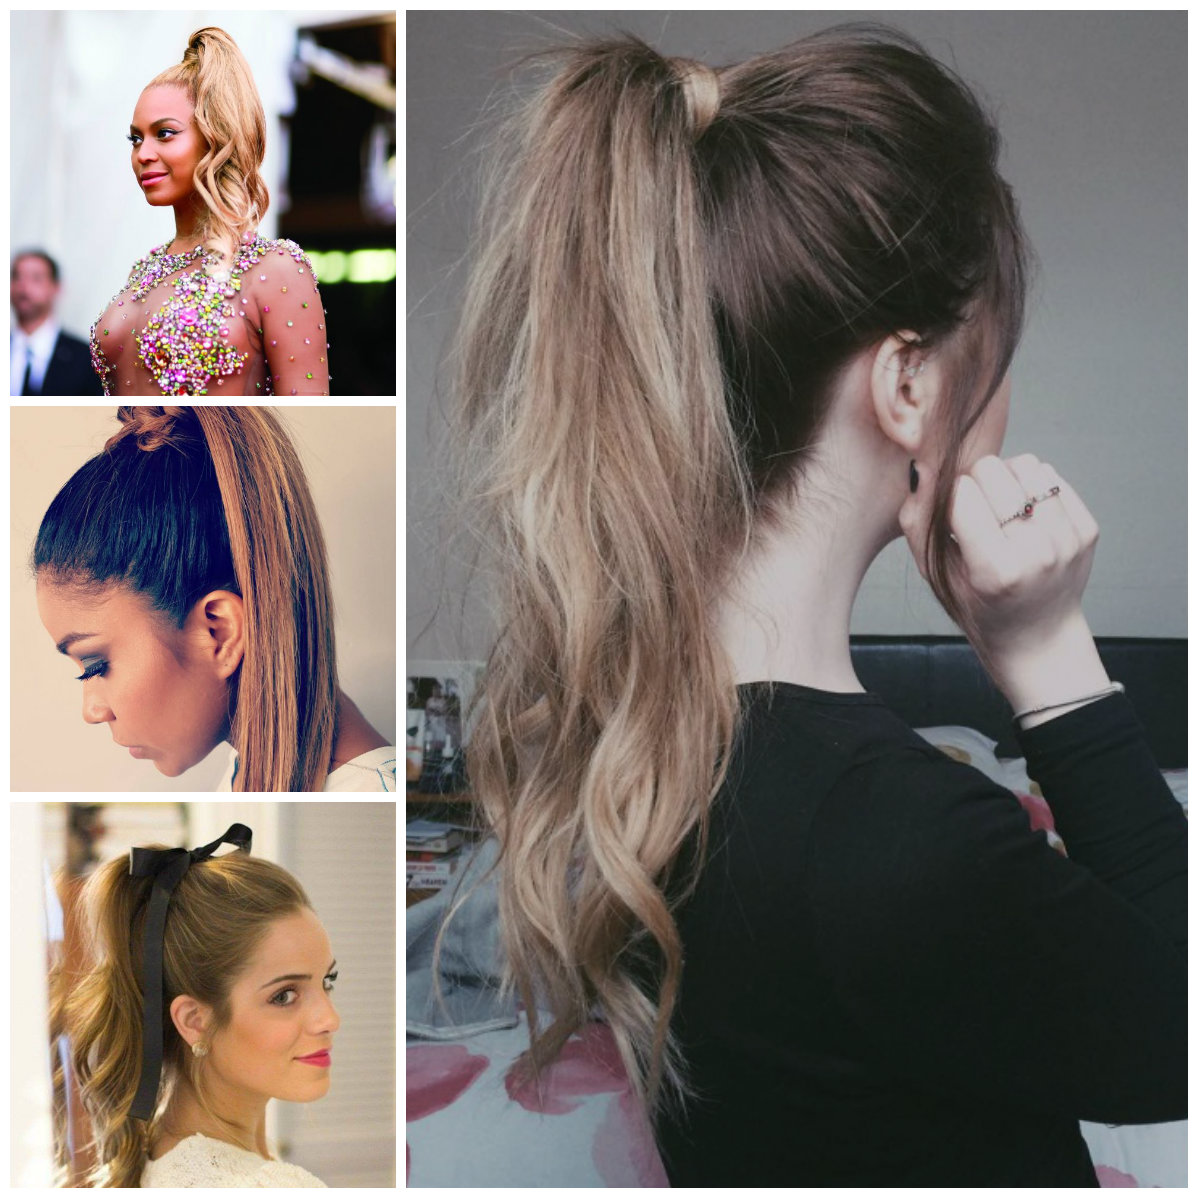 latest hairstyles | 2017 haircuts, hairstyles and hair colors